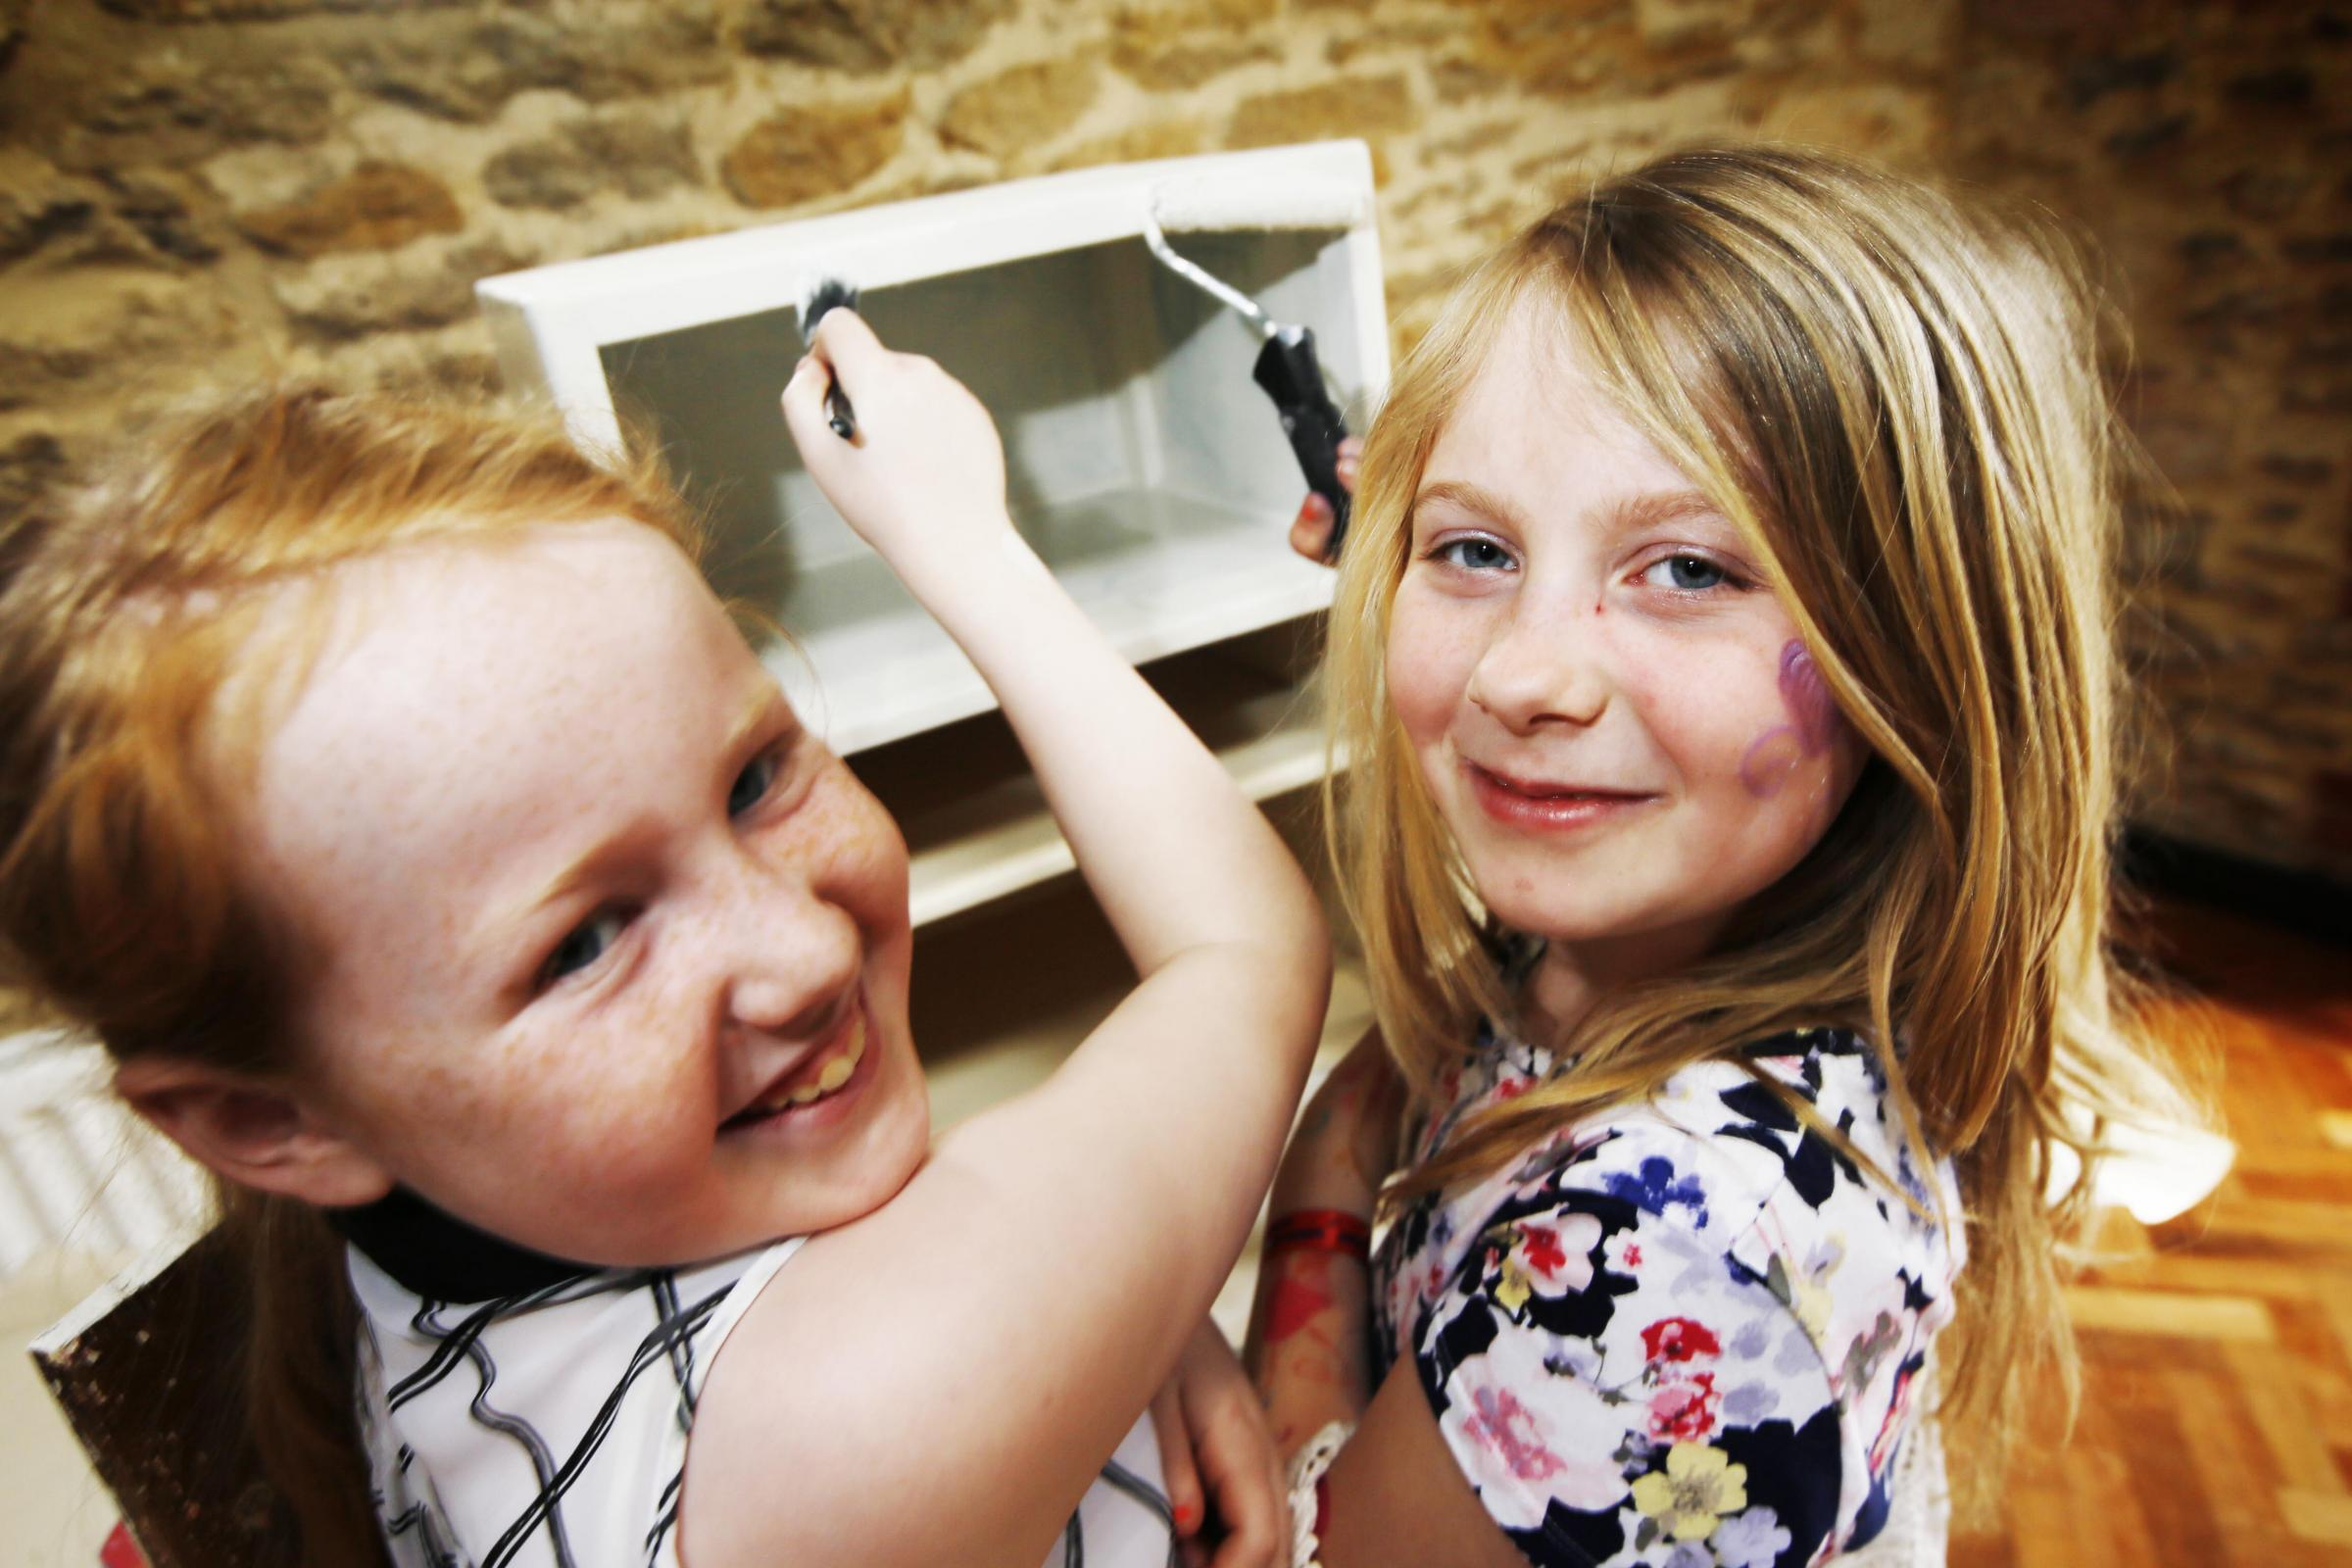 UPCYCLING: Sarah McNally-Salmon, 11, left, and Rosie Rasala, 10, take part in the event